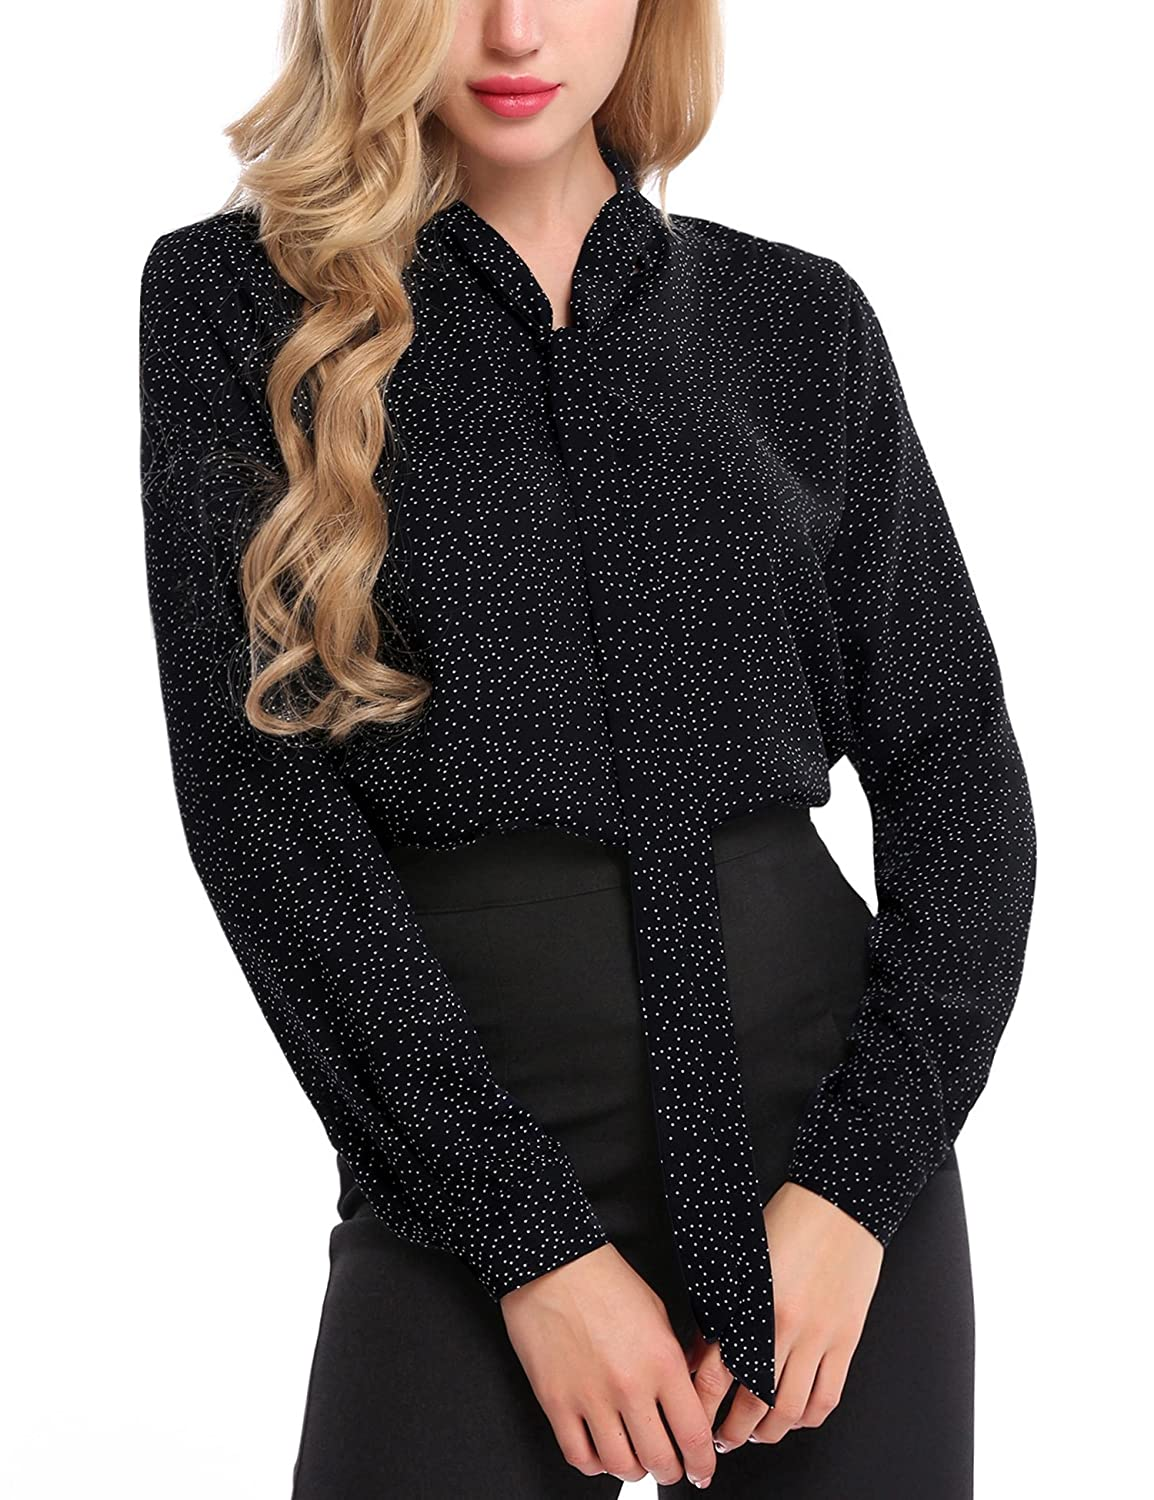 7696c034e97b4a Ladies Chiffon Blouse Tops features: Vintage stand collar, Tie-bow V neck,  Button cuffed sleeve, Long sleeve, High low rounded hemline, Pullover  style, ...